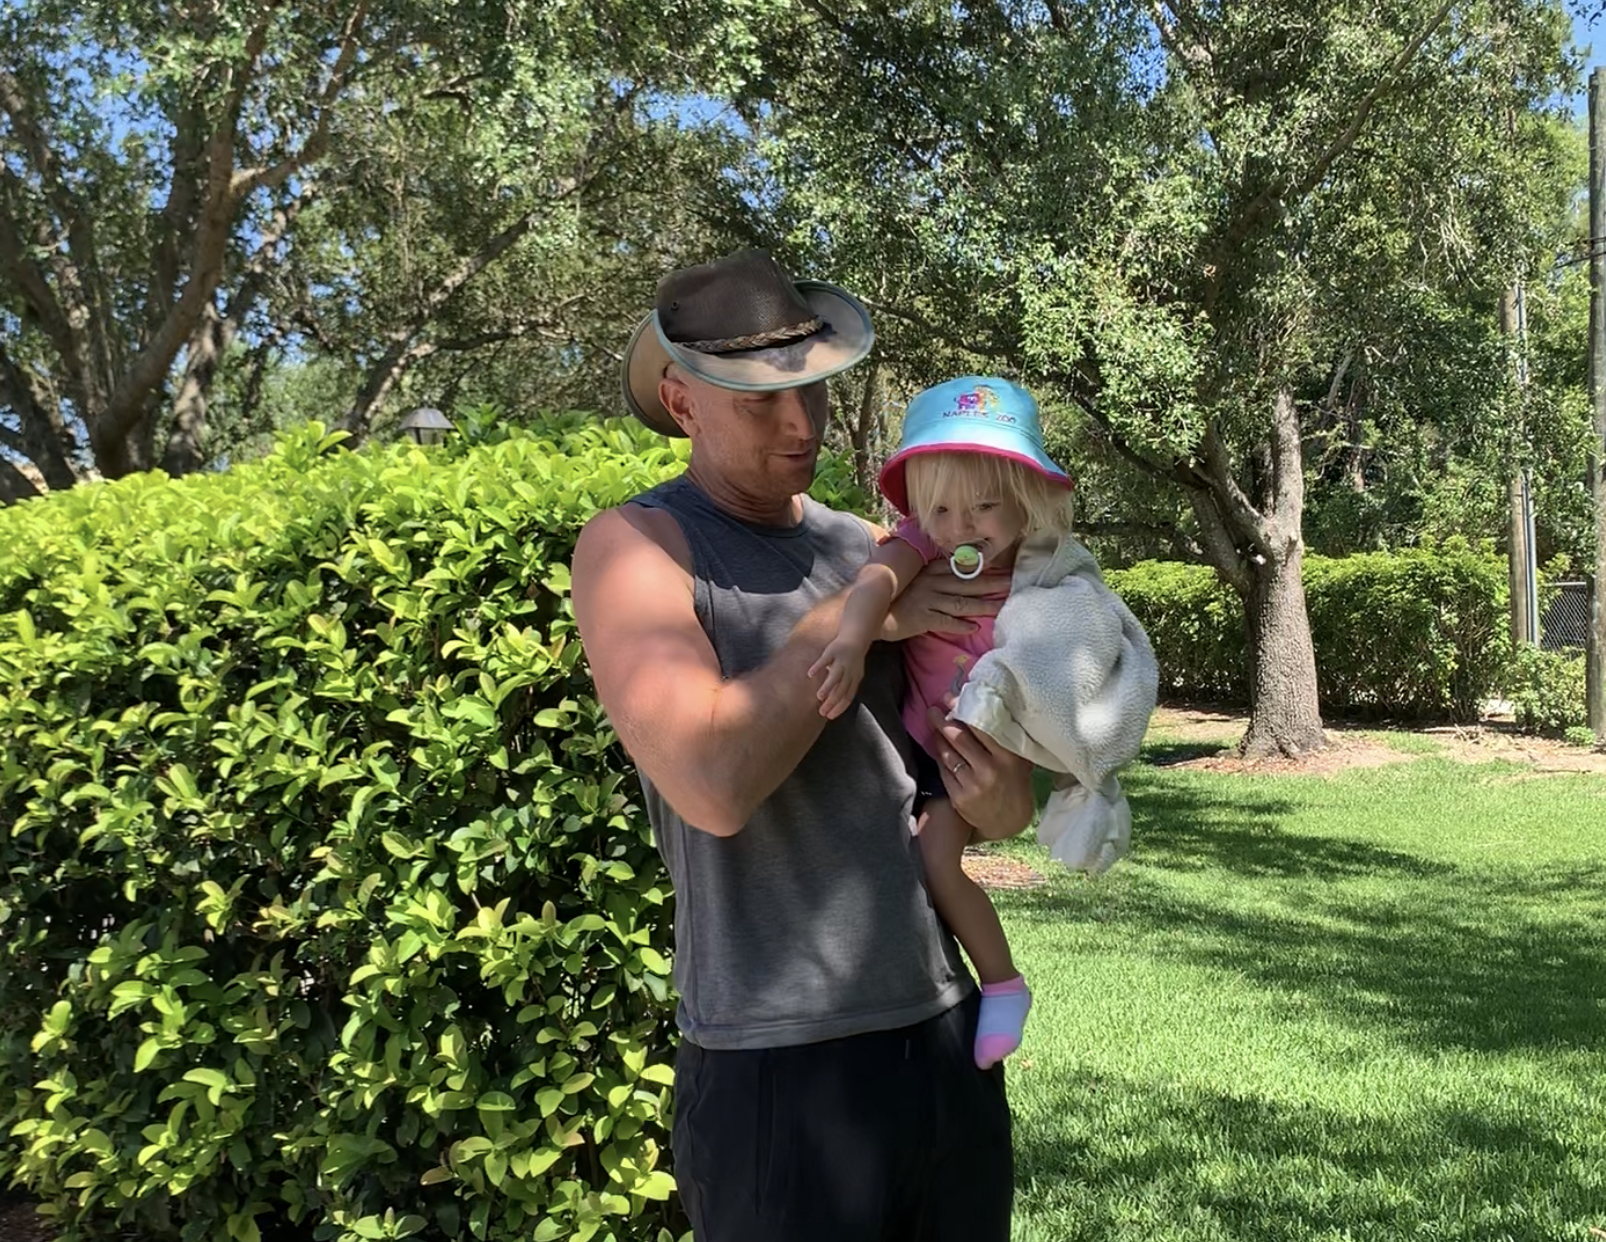 Daddy Daughter Fitness Workout